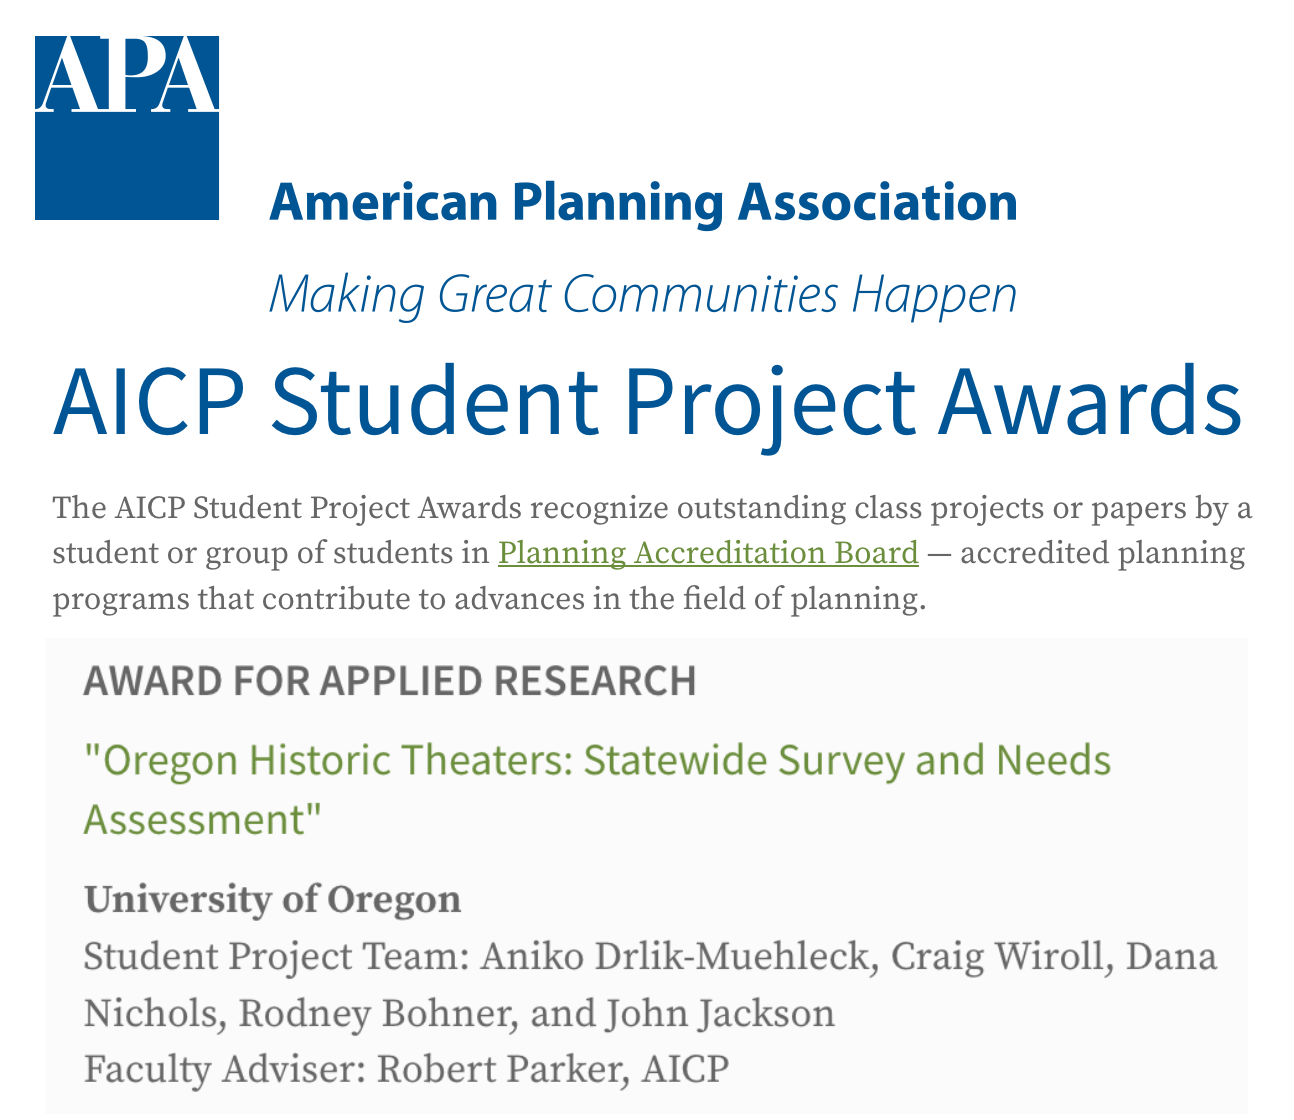 2016 AICP Awards winner for Applied Research - The AICP Student Project Awards recognize outstanding class projects or papers by a student or group of students in Planning Accreditation Board — accredited planning programs that contribute to advances in the field of planning.Its report documents the physical, operational, and financial needs of Oregon's historic theaters and presents recommendations for a statewide support system.